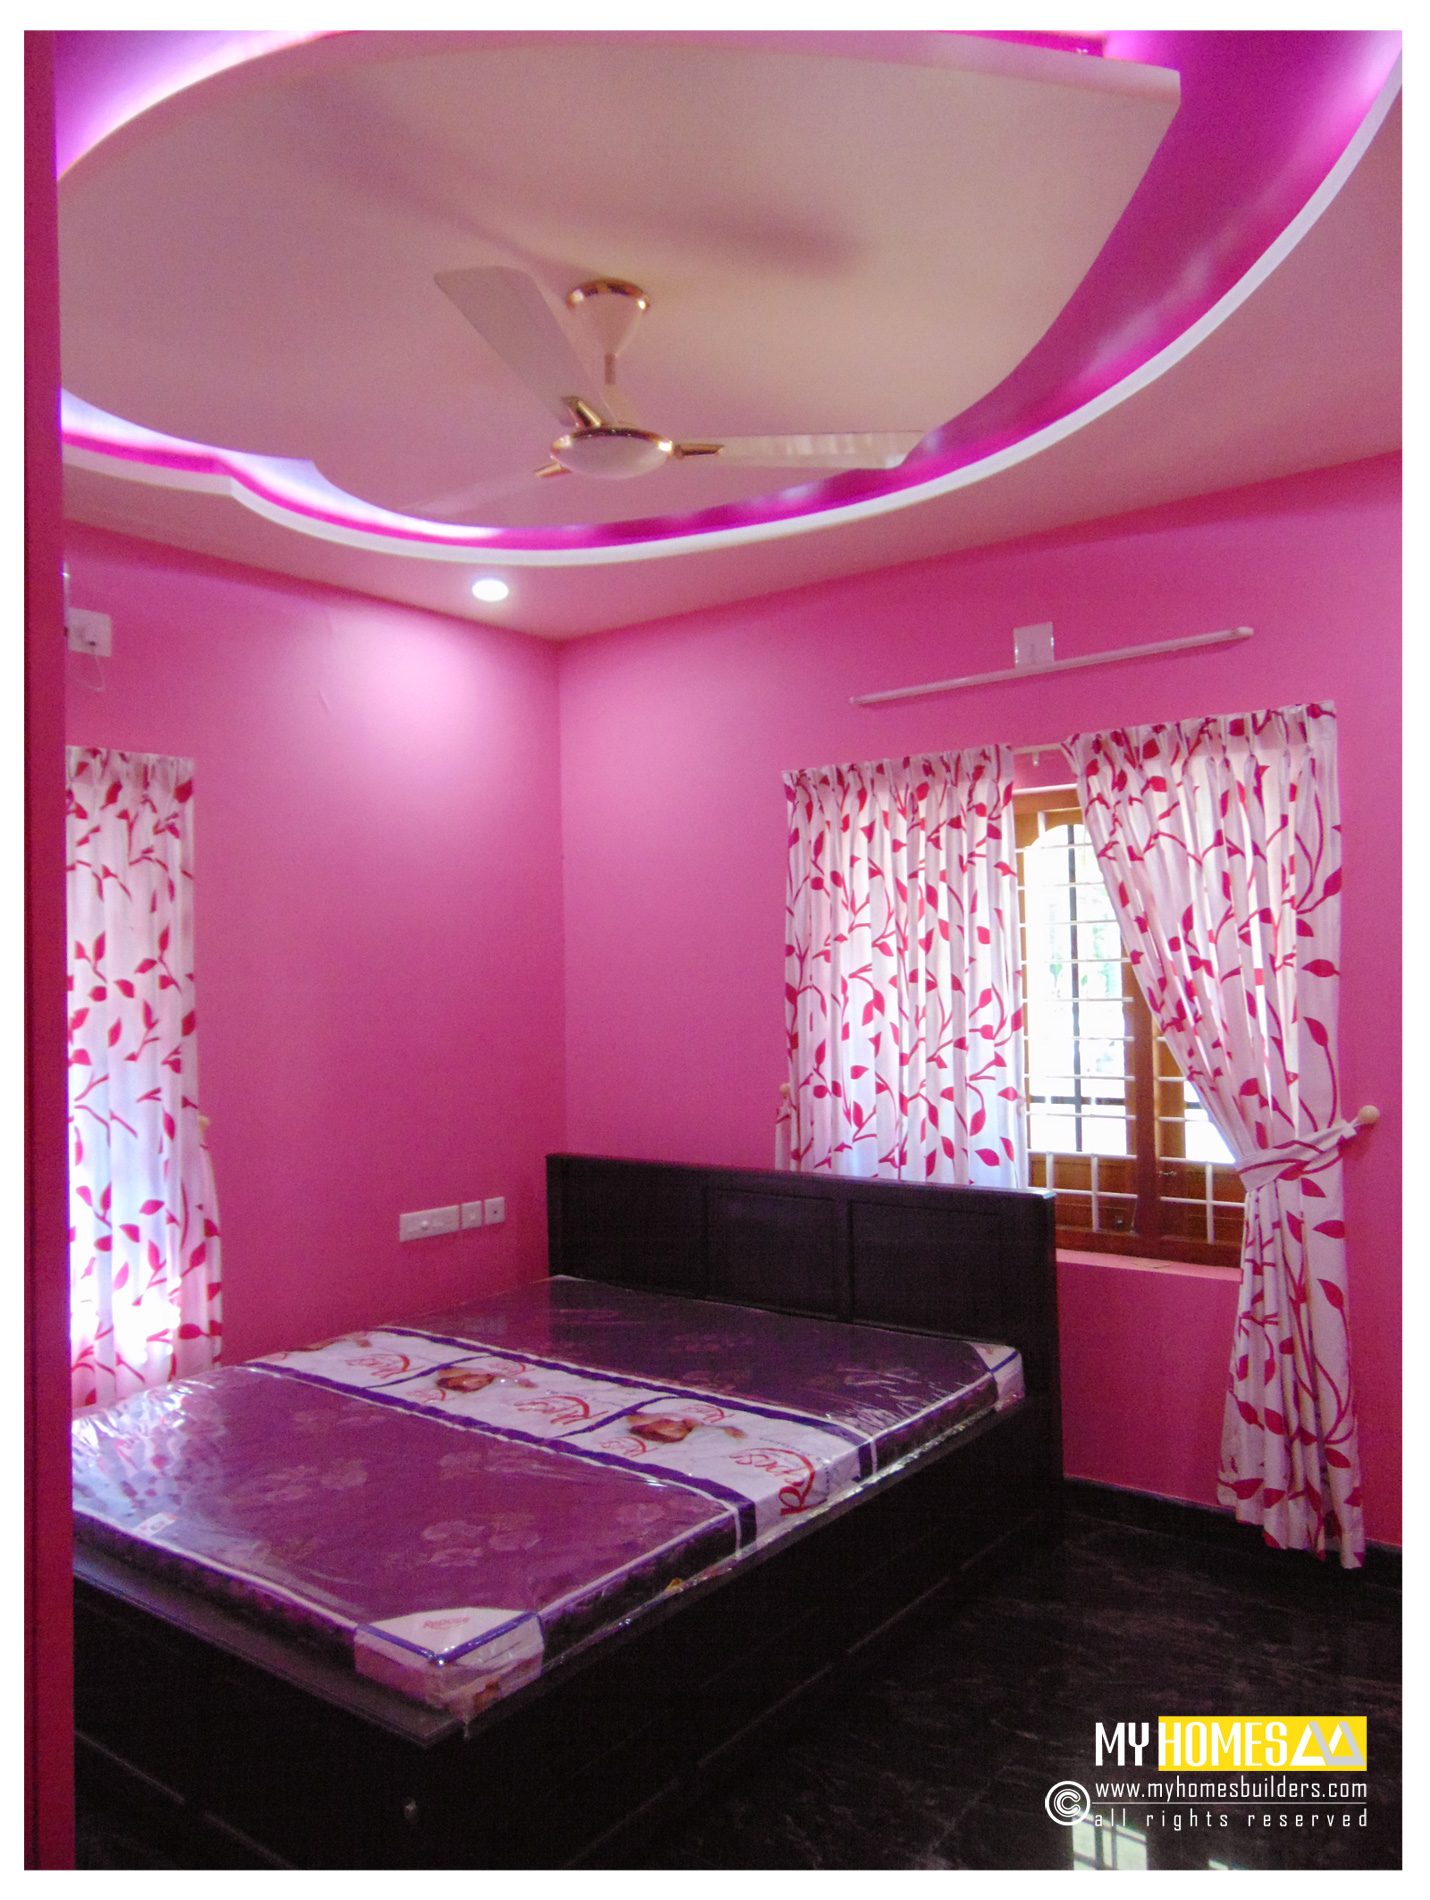 Simple style kerala bedroom designs ideas for home interior for Interior designs in kerala